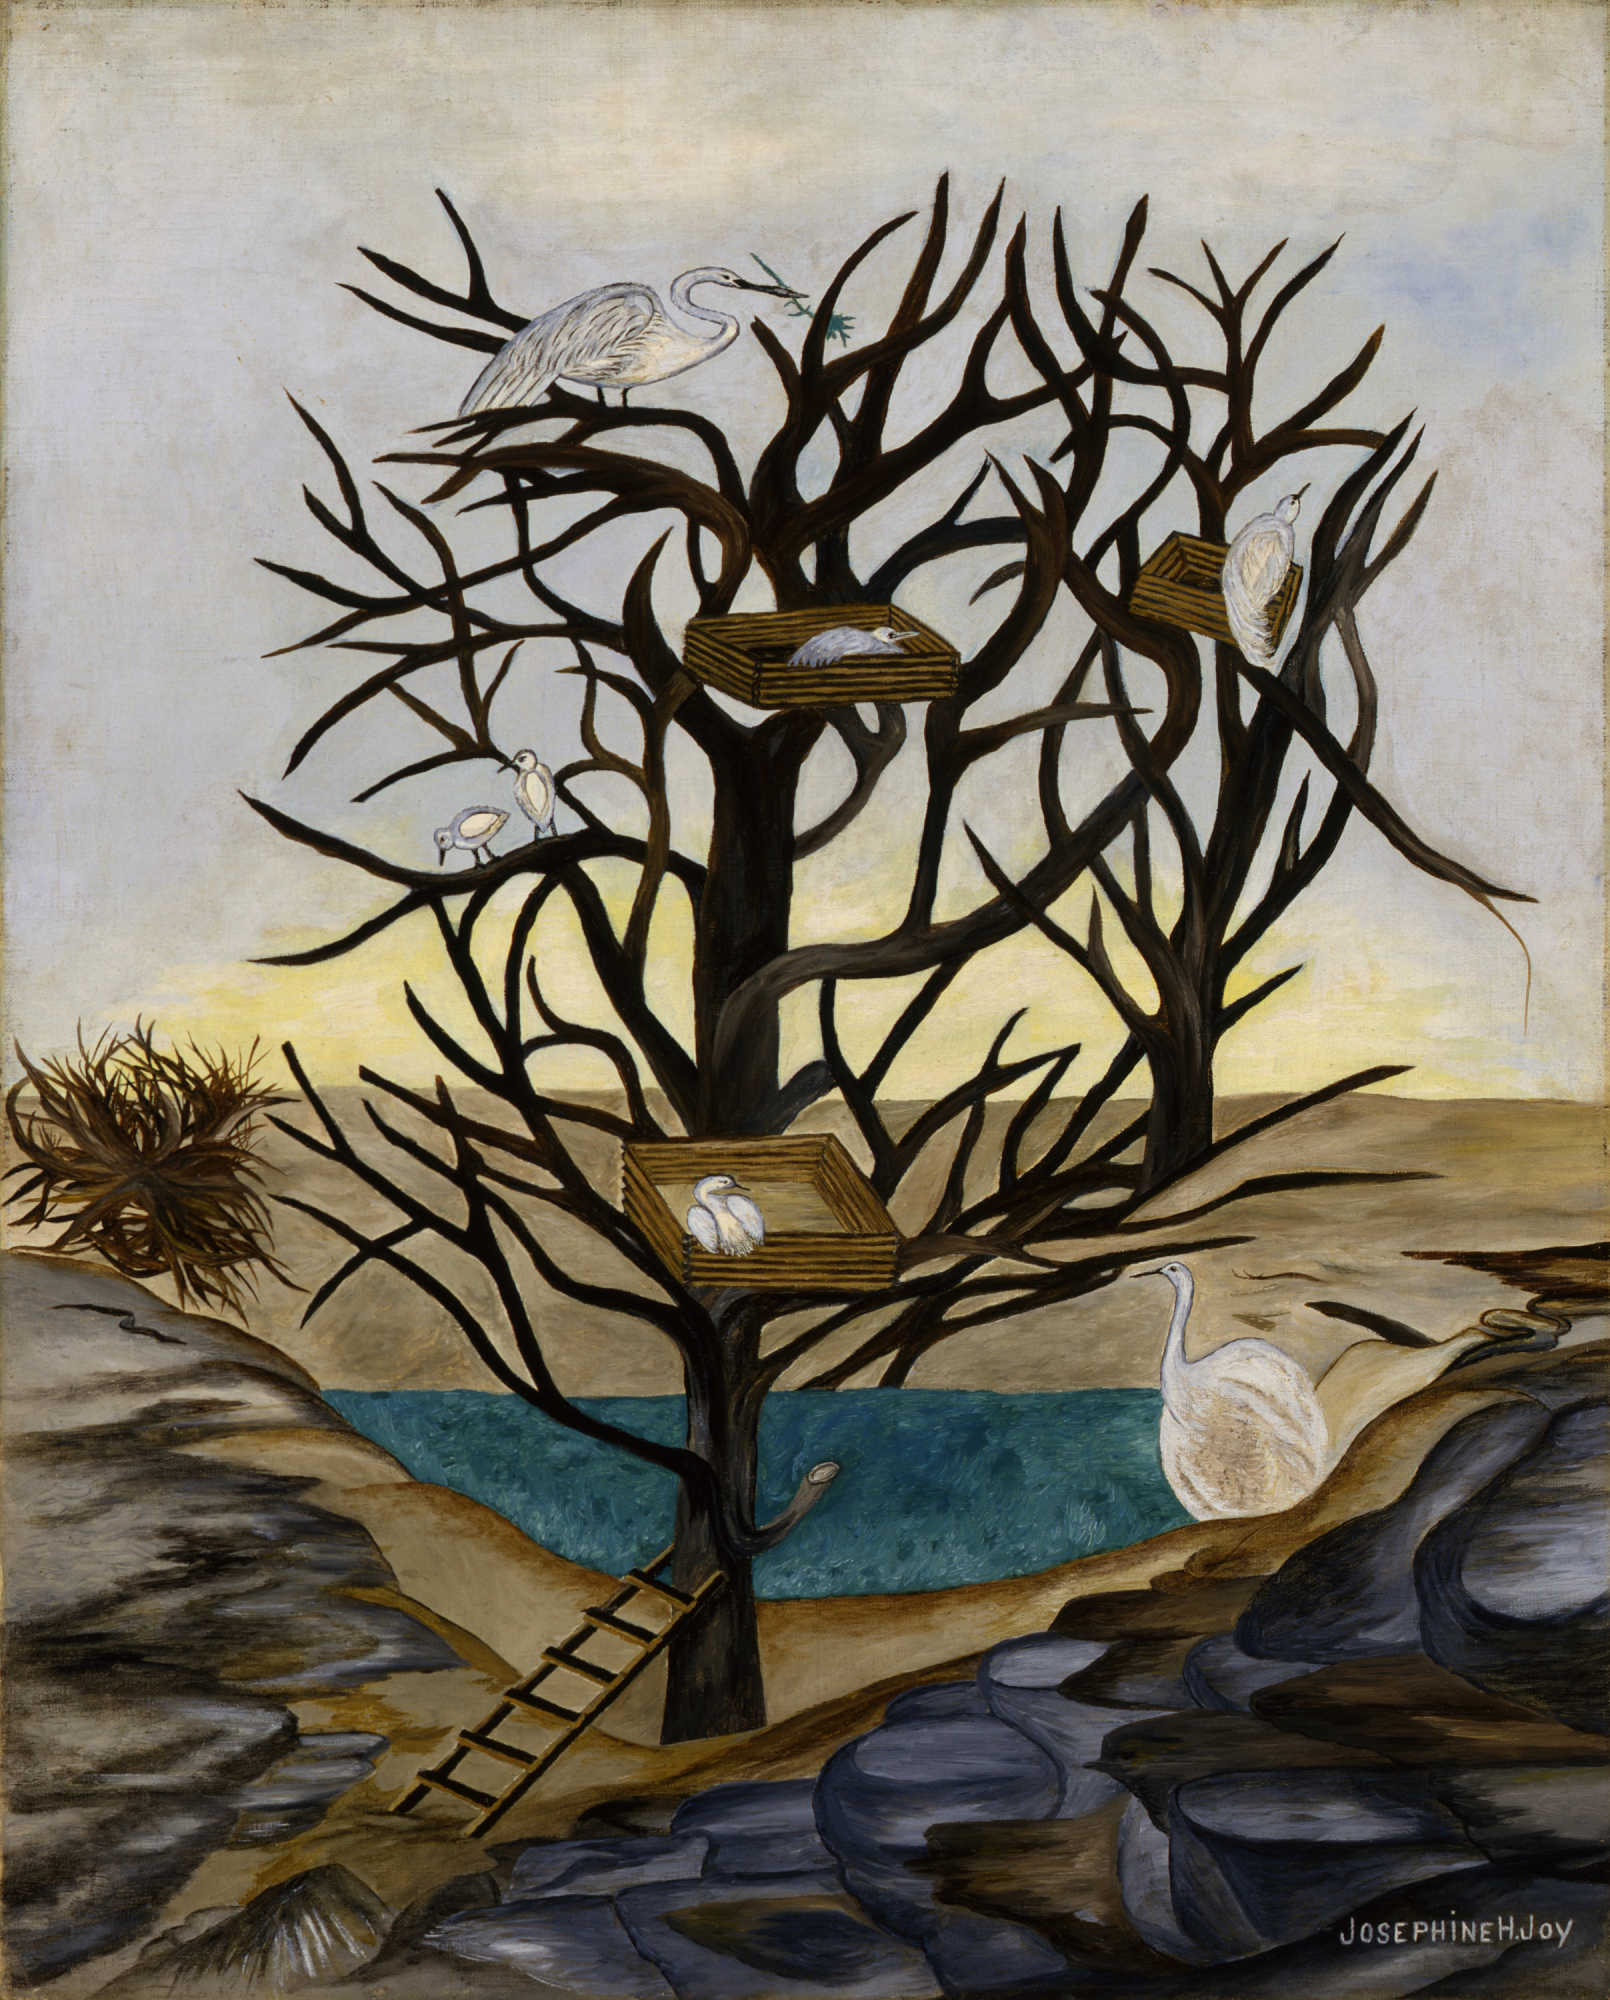 Josephine Joy, Waterbirds Nesting, ca. 1935-1939, oil on canvas, Smithsonian American Art Museum, Transfer from General Services Administration, 1971.447.42